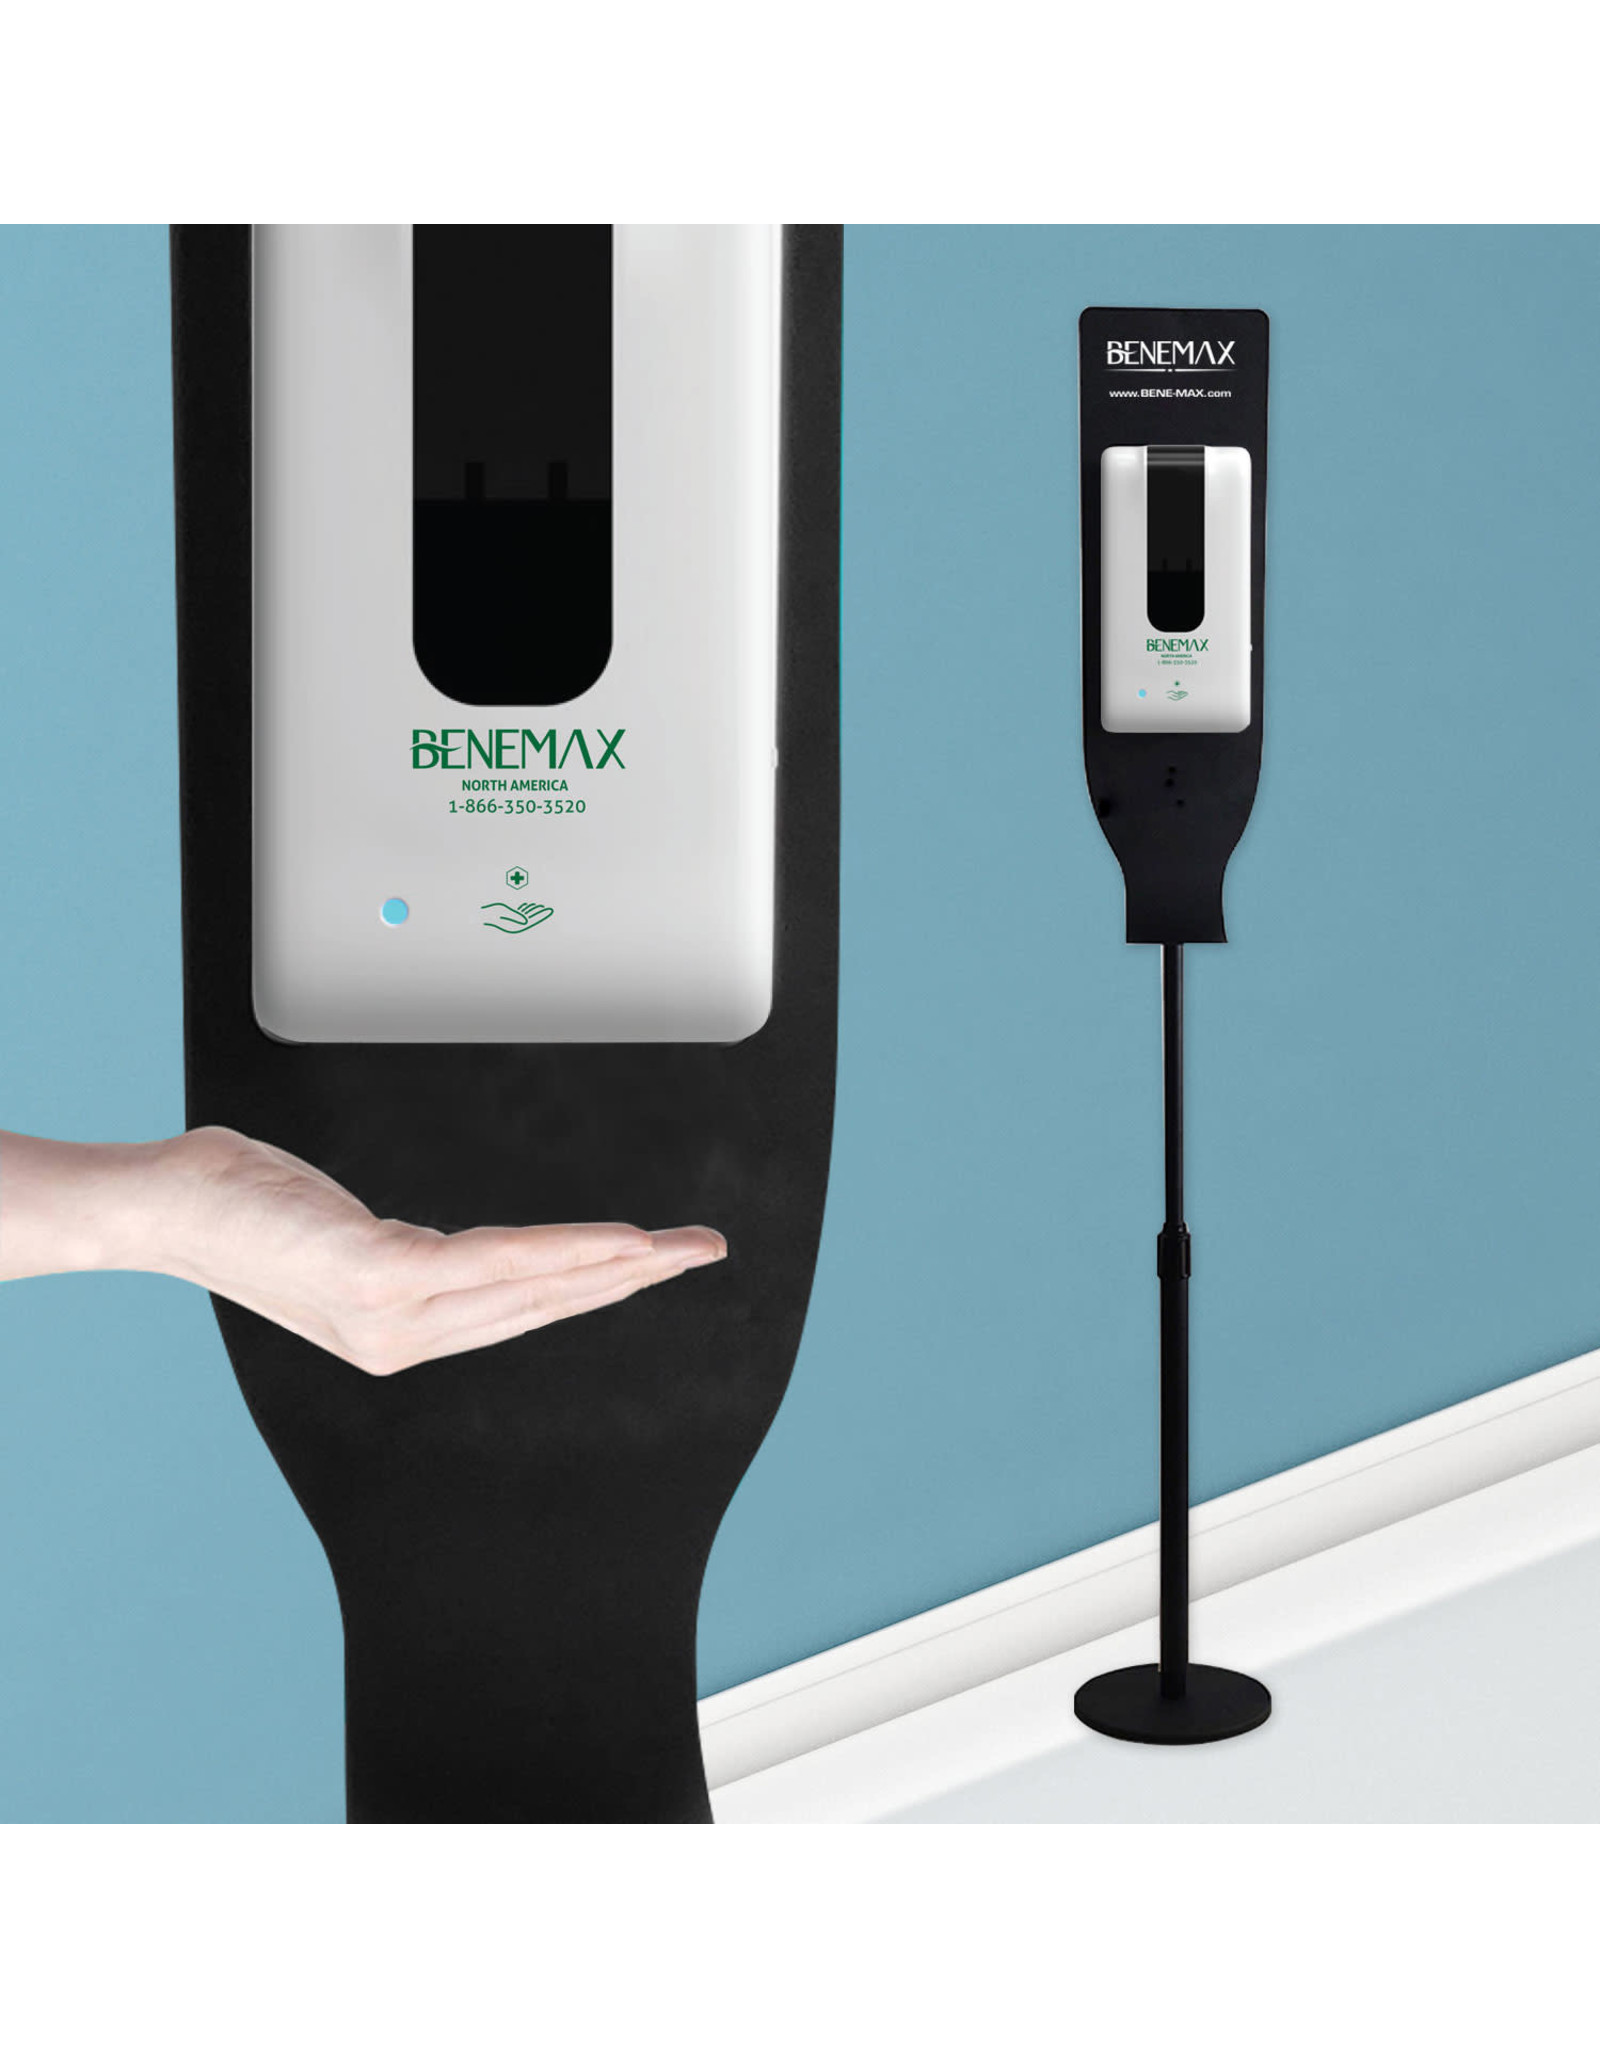 Benemax Benemax Total Protection Touchless Automatic Hand Sanitizer Dispenser & Stand with 1 X 1L Refill